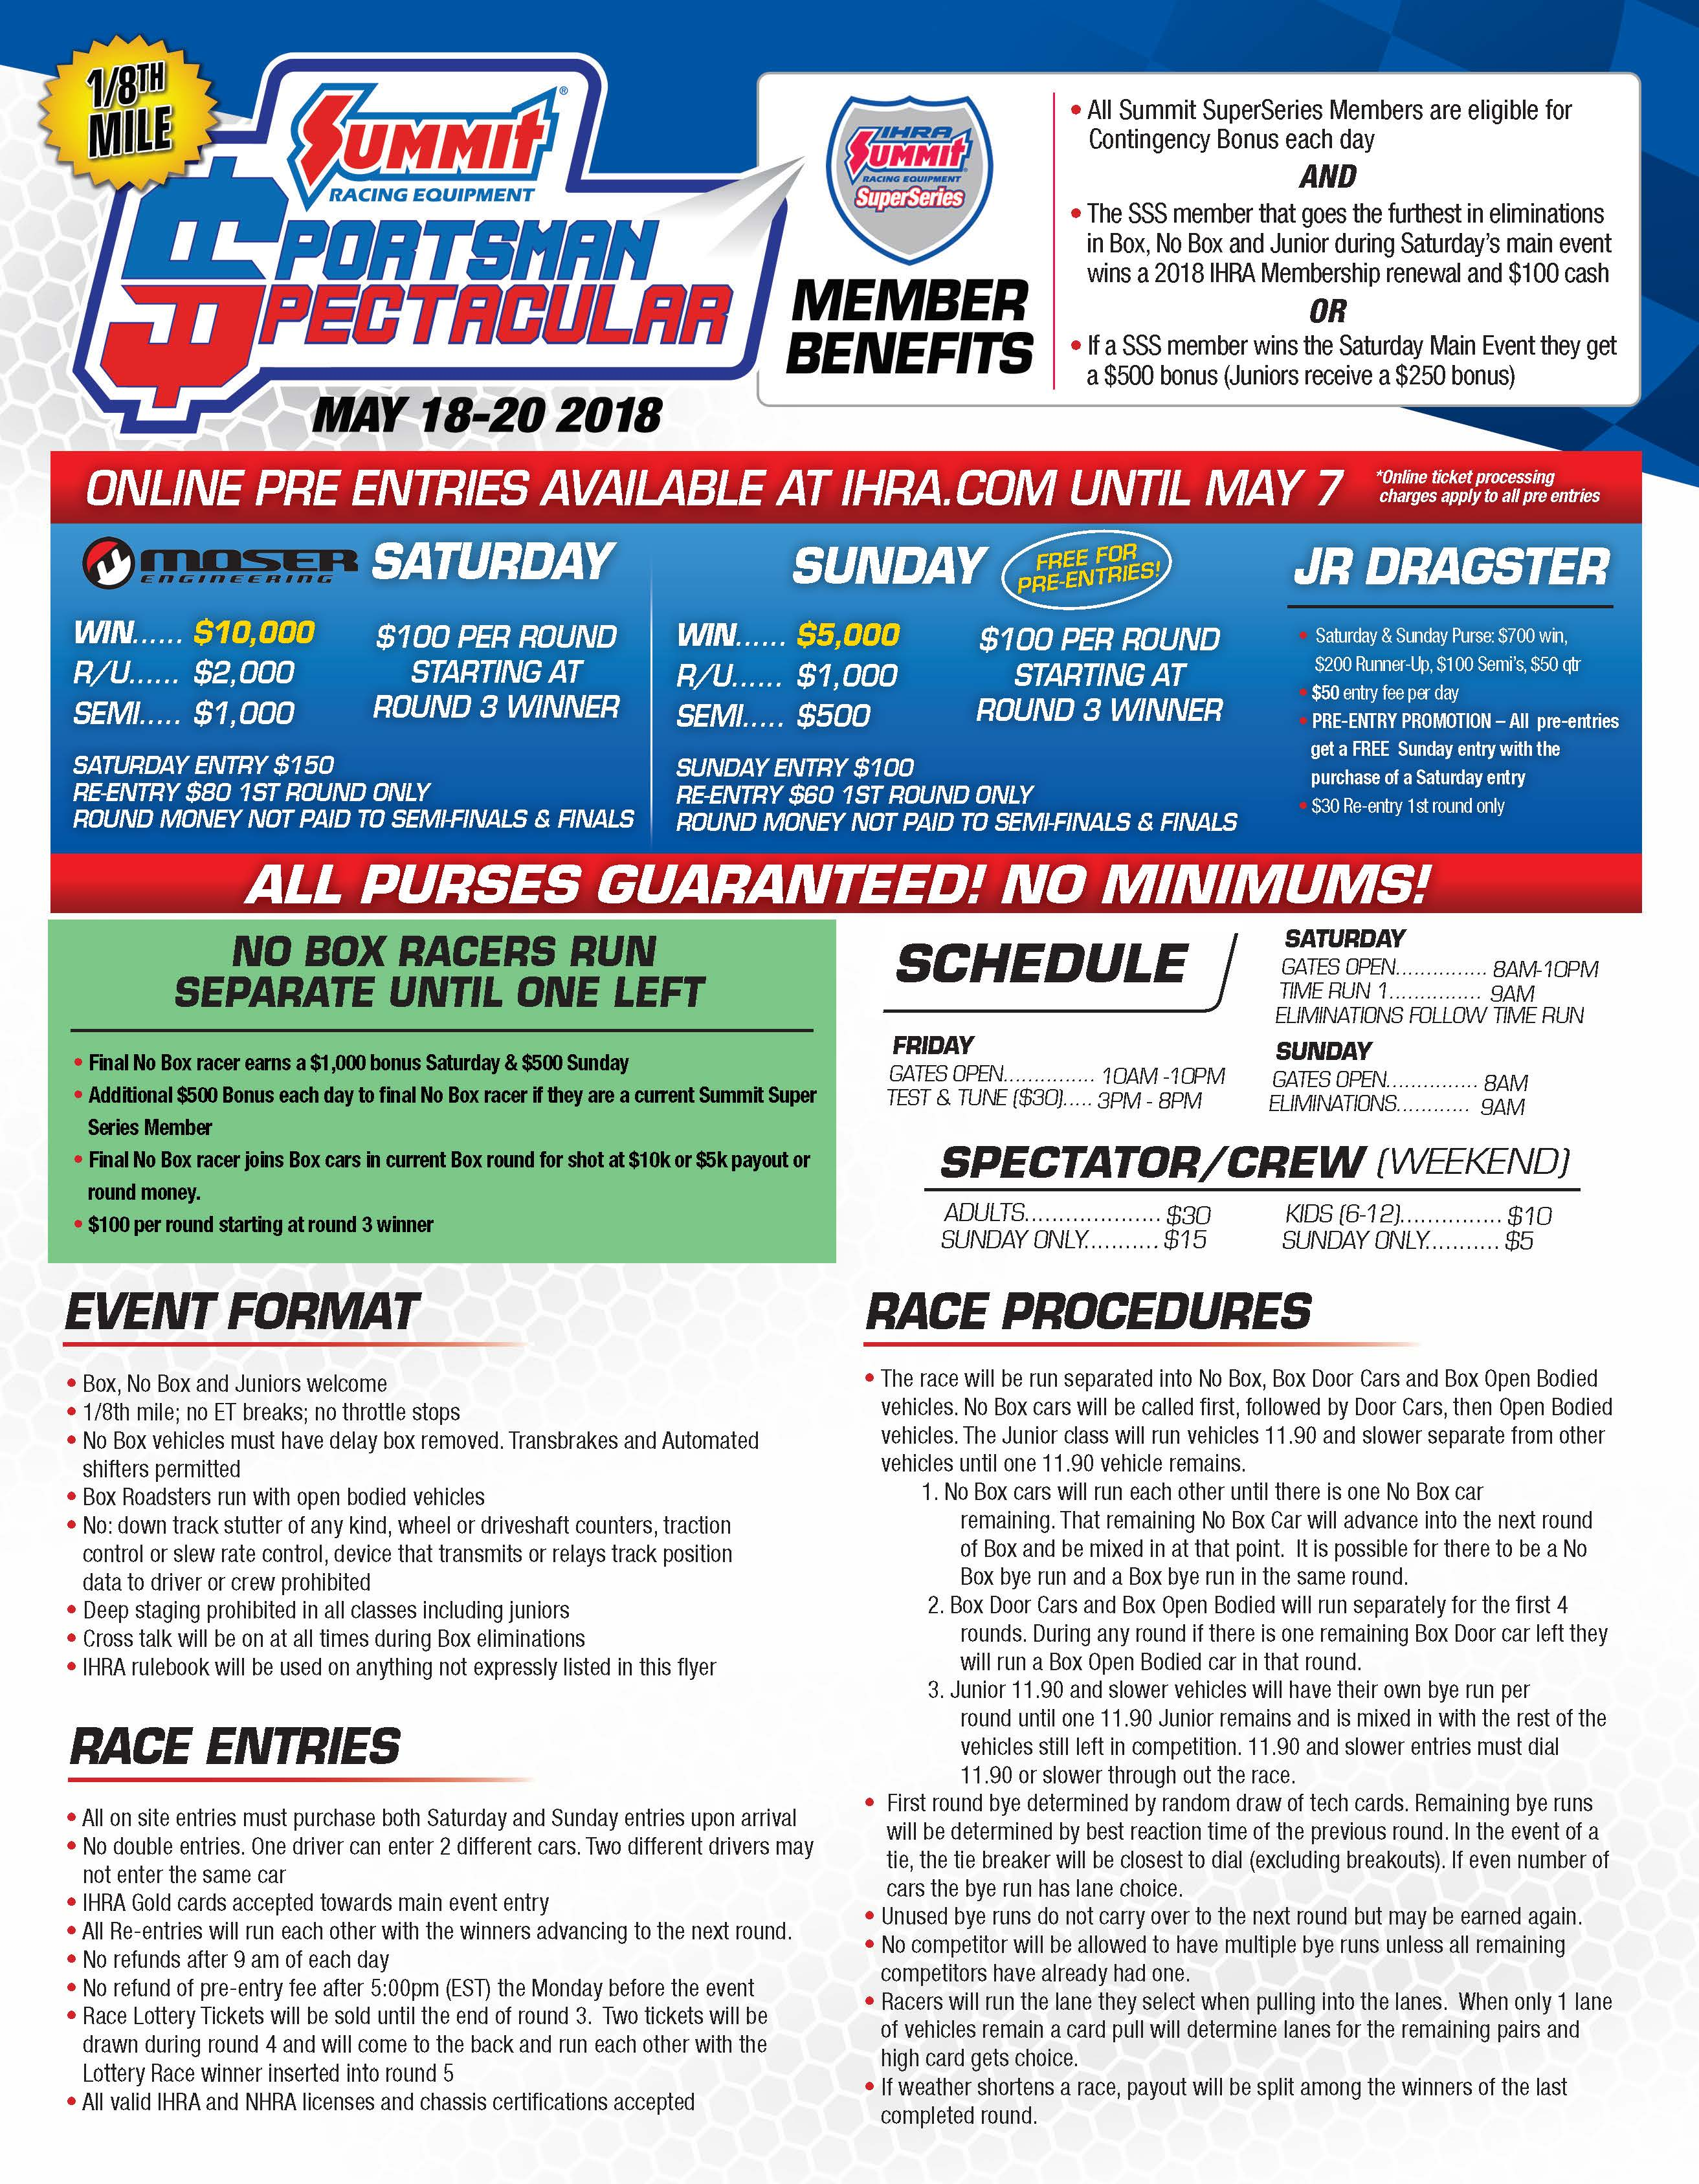 IHRA-Sportsman-Spectacular-Flyer-KEYSTONE-back